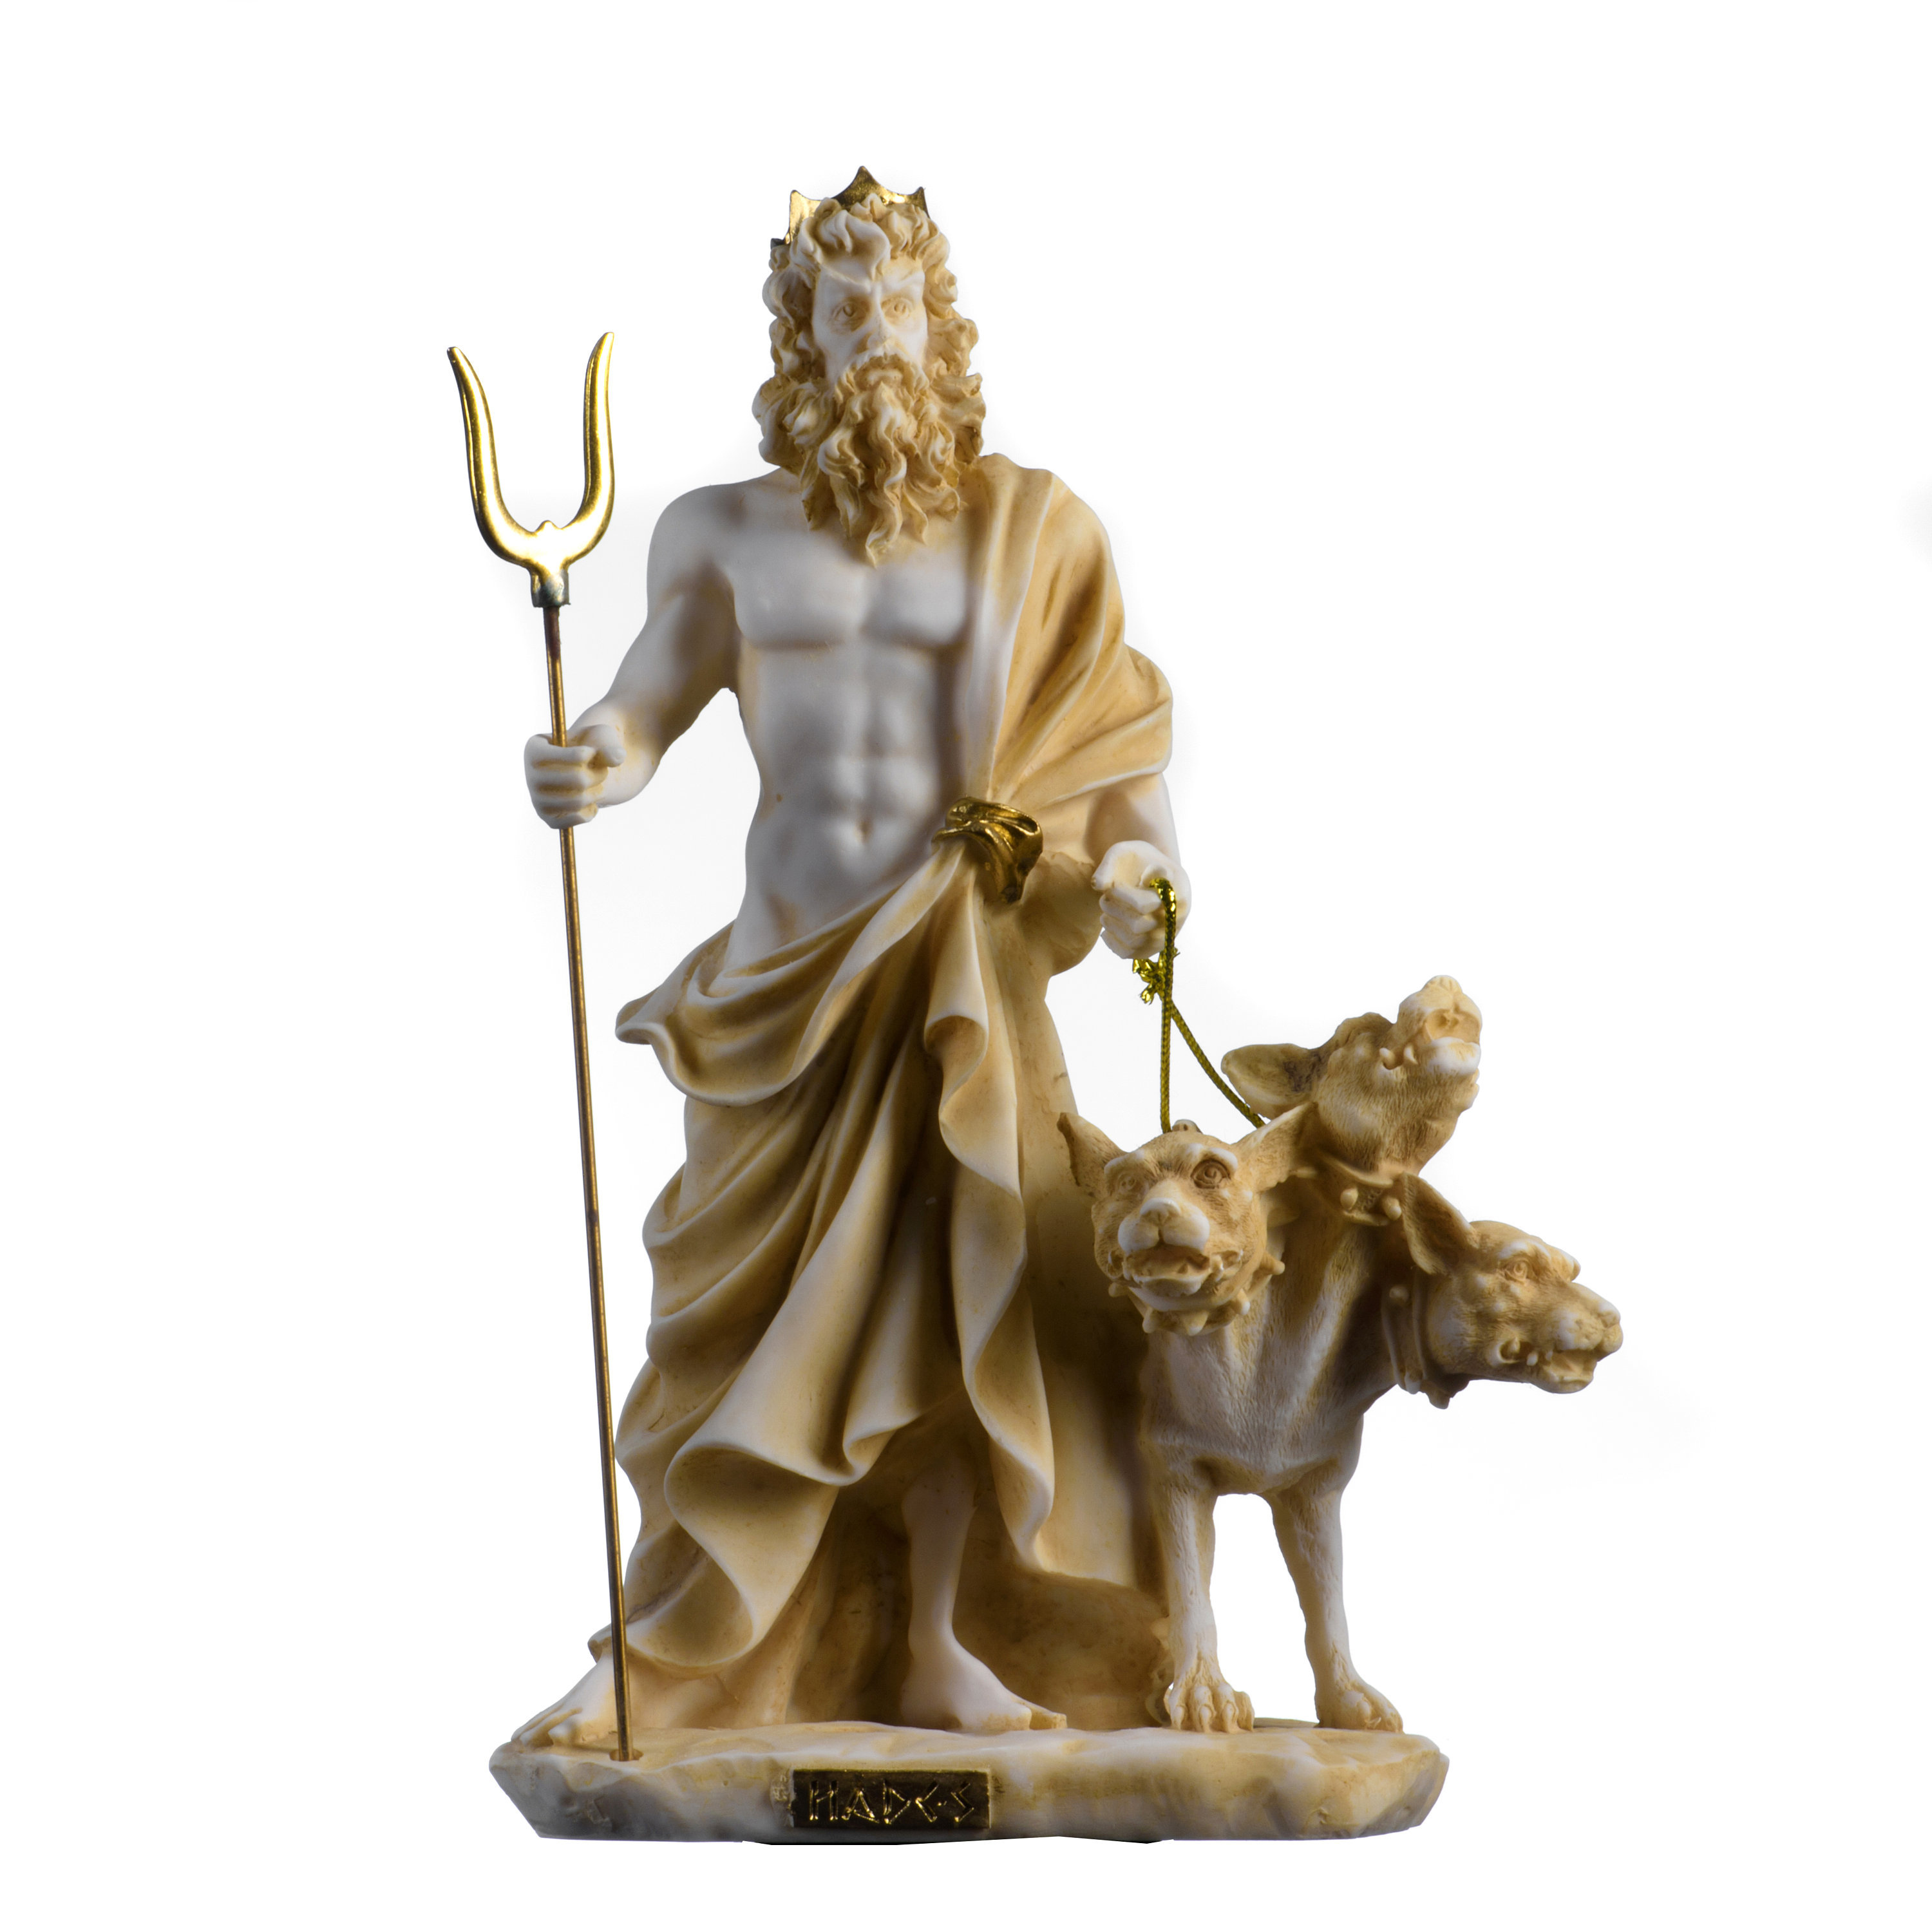 Pluto Hades Lord of the Underworld Greek Statue Dead Figurine  Gold Tone 9.4""